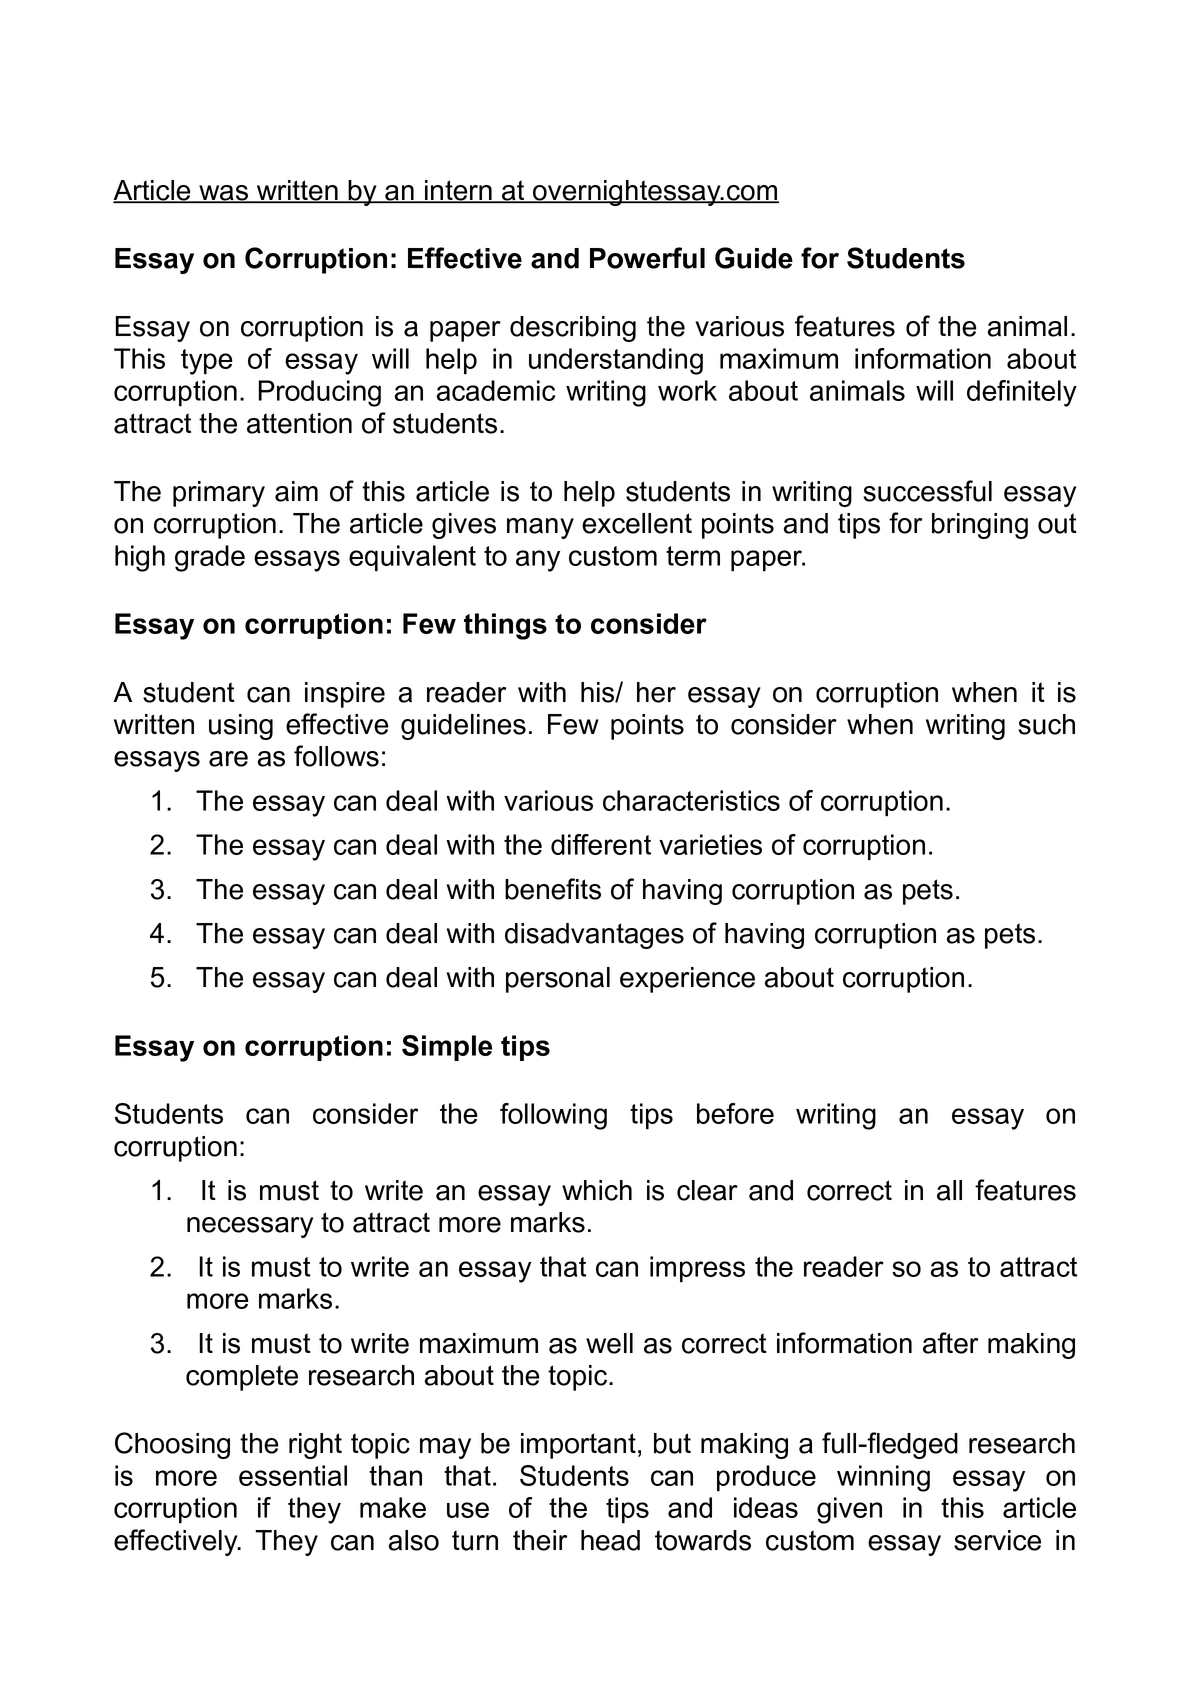 calaméo essay on corruption effective and powerful guide for calaméo essay on corruption effective and powerful guide for students